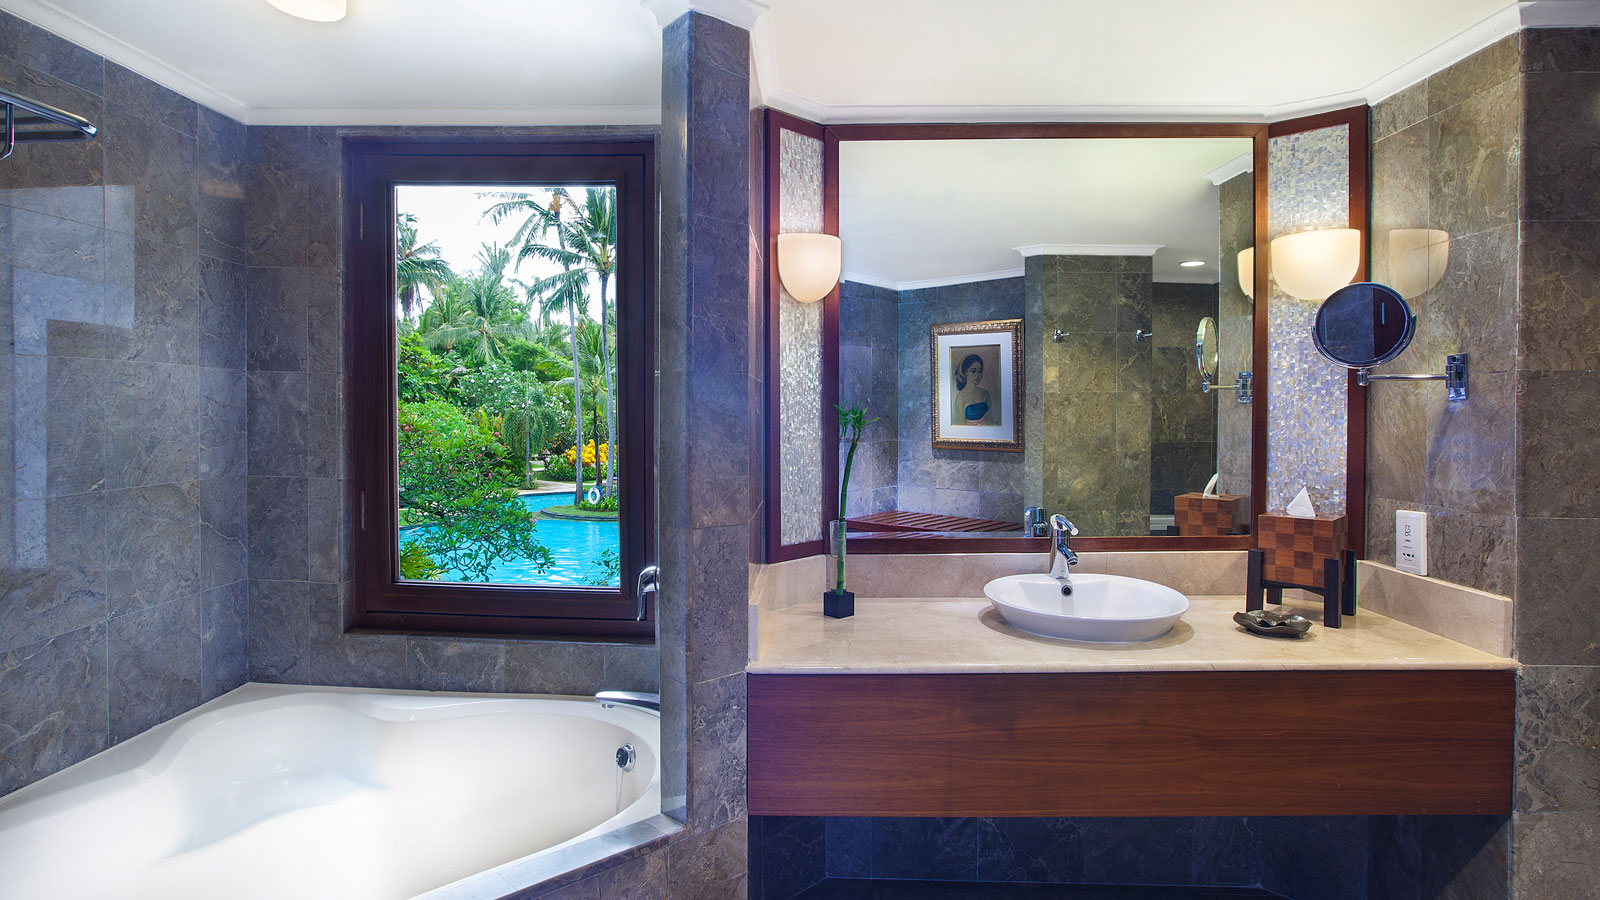 Executive Suite Bathroom at The Laguna Bali